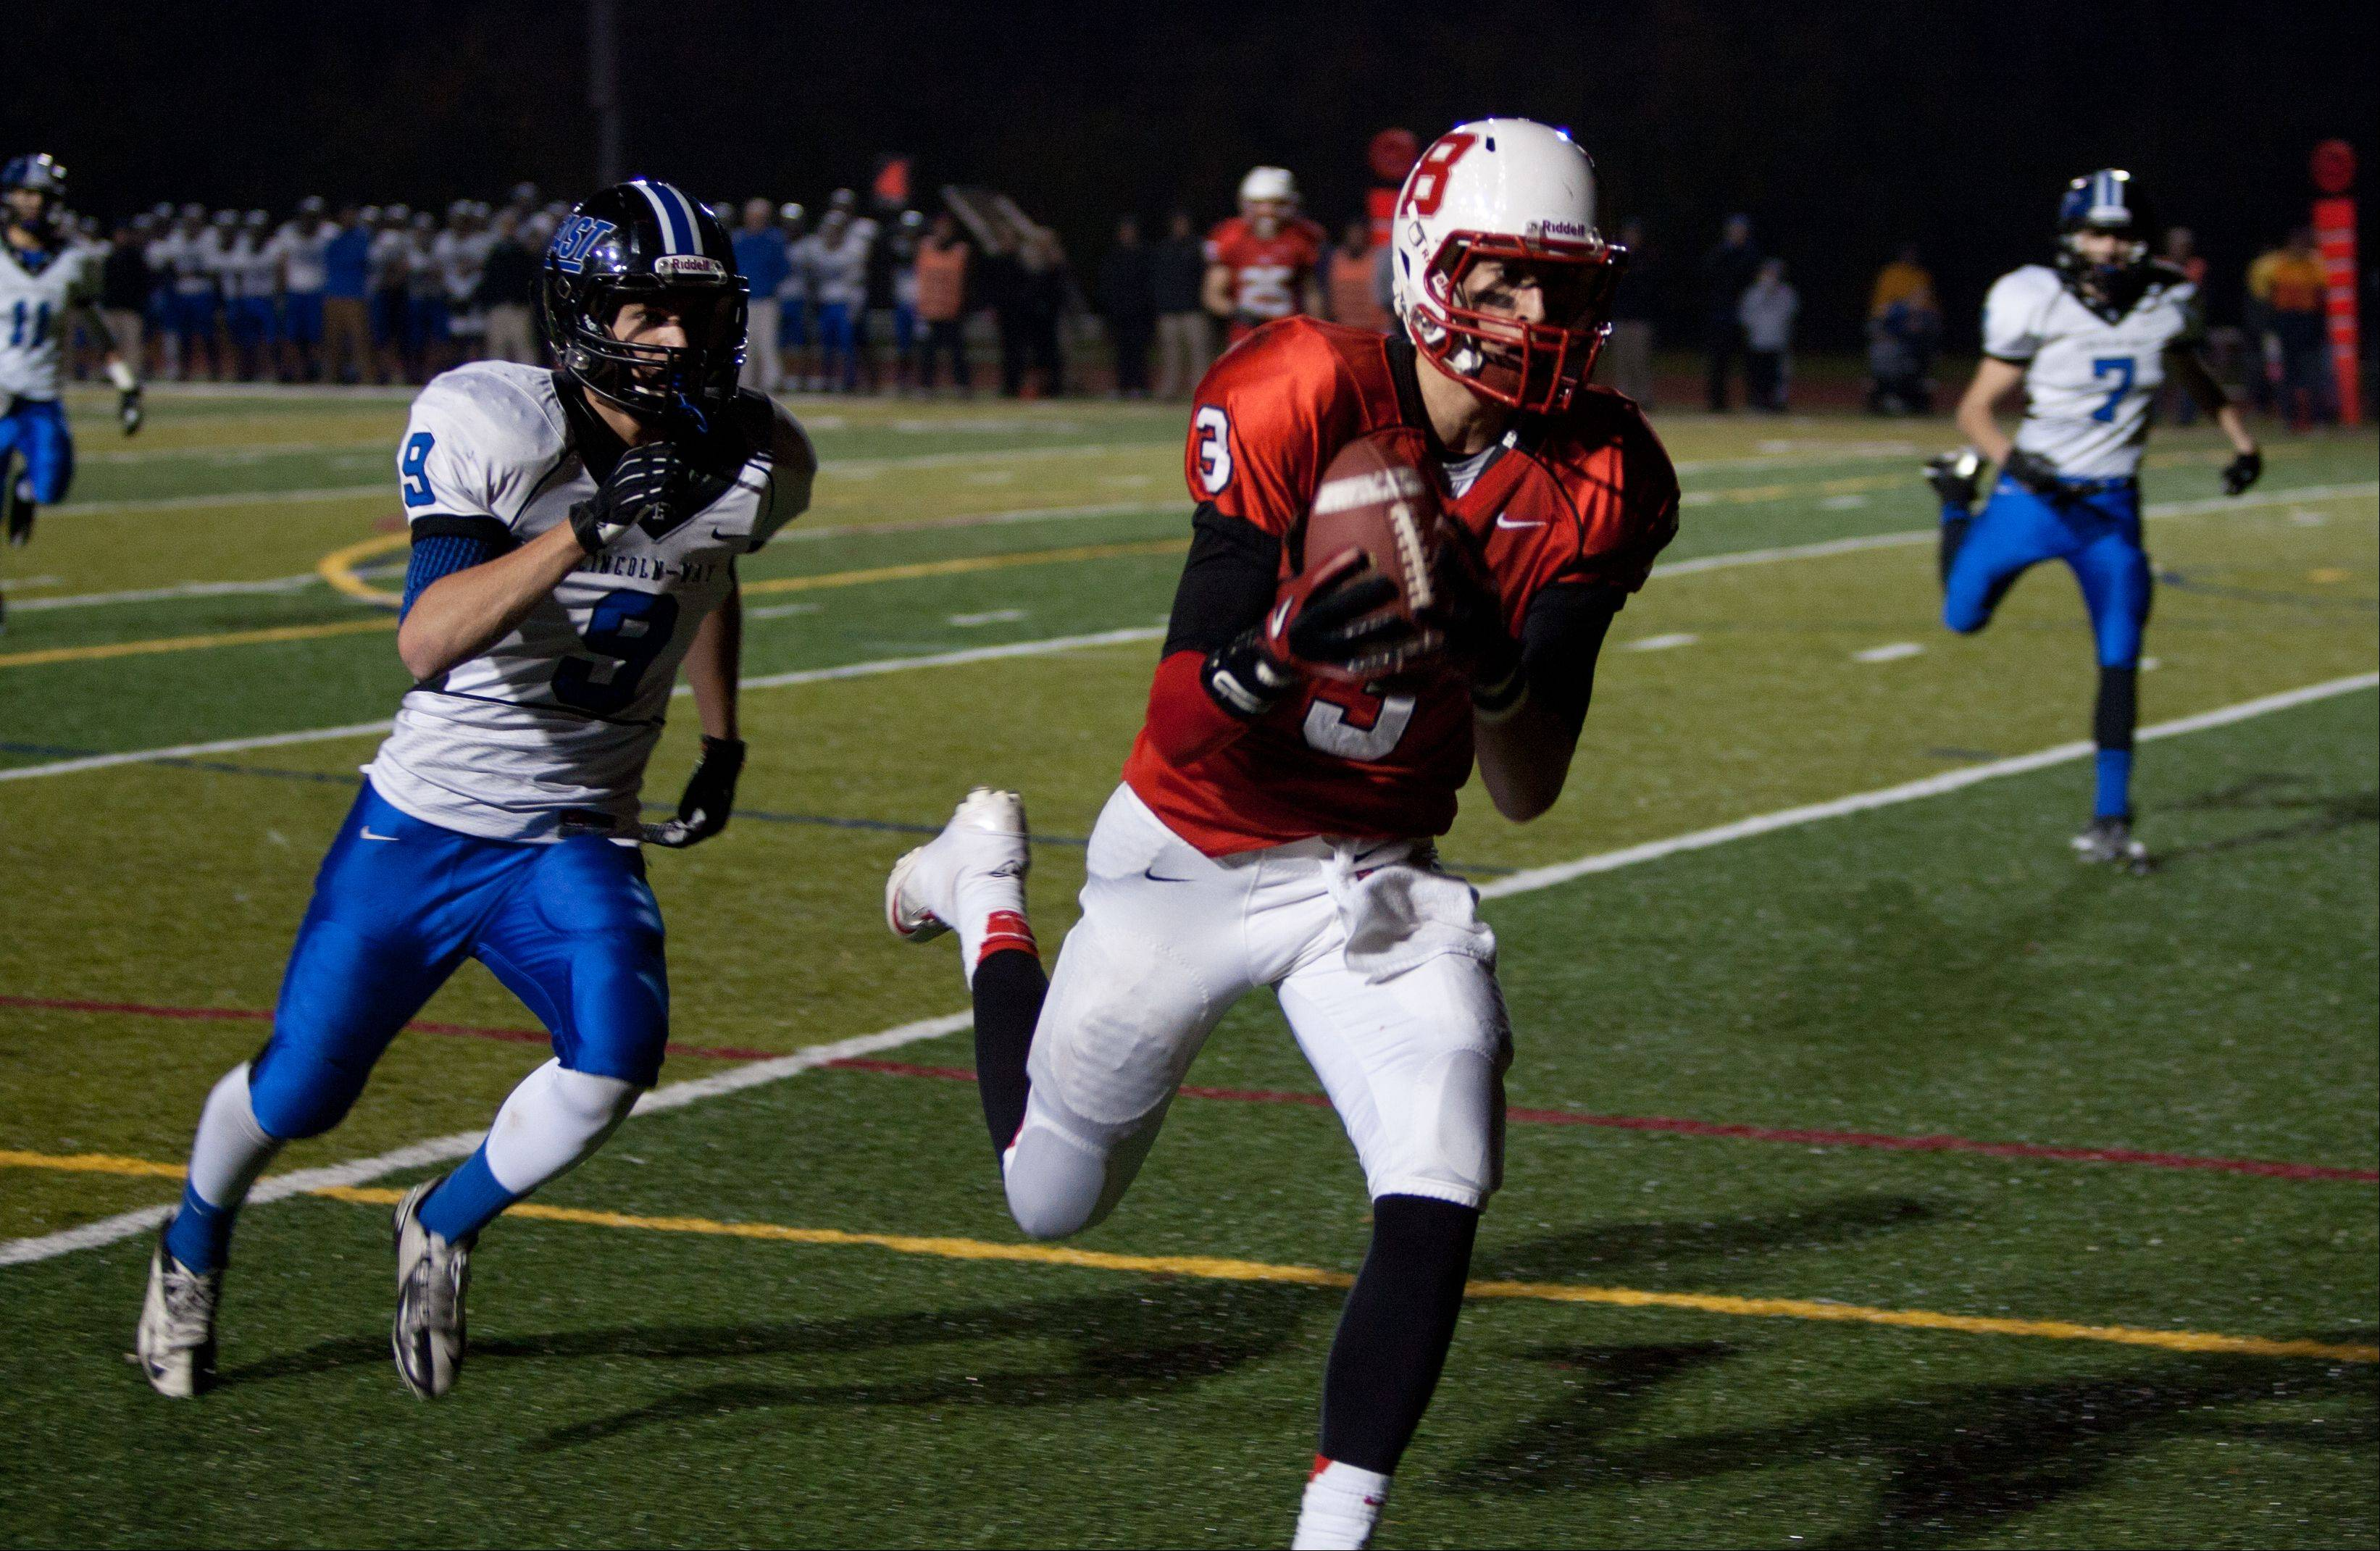 Benet's Jack Euritt (3), hauls in a fourth down, fourth quarter touchdown pass against Lincoln-Way East.